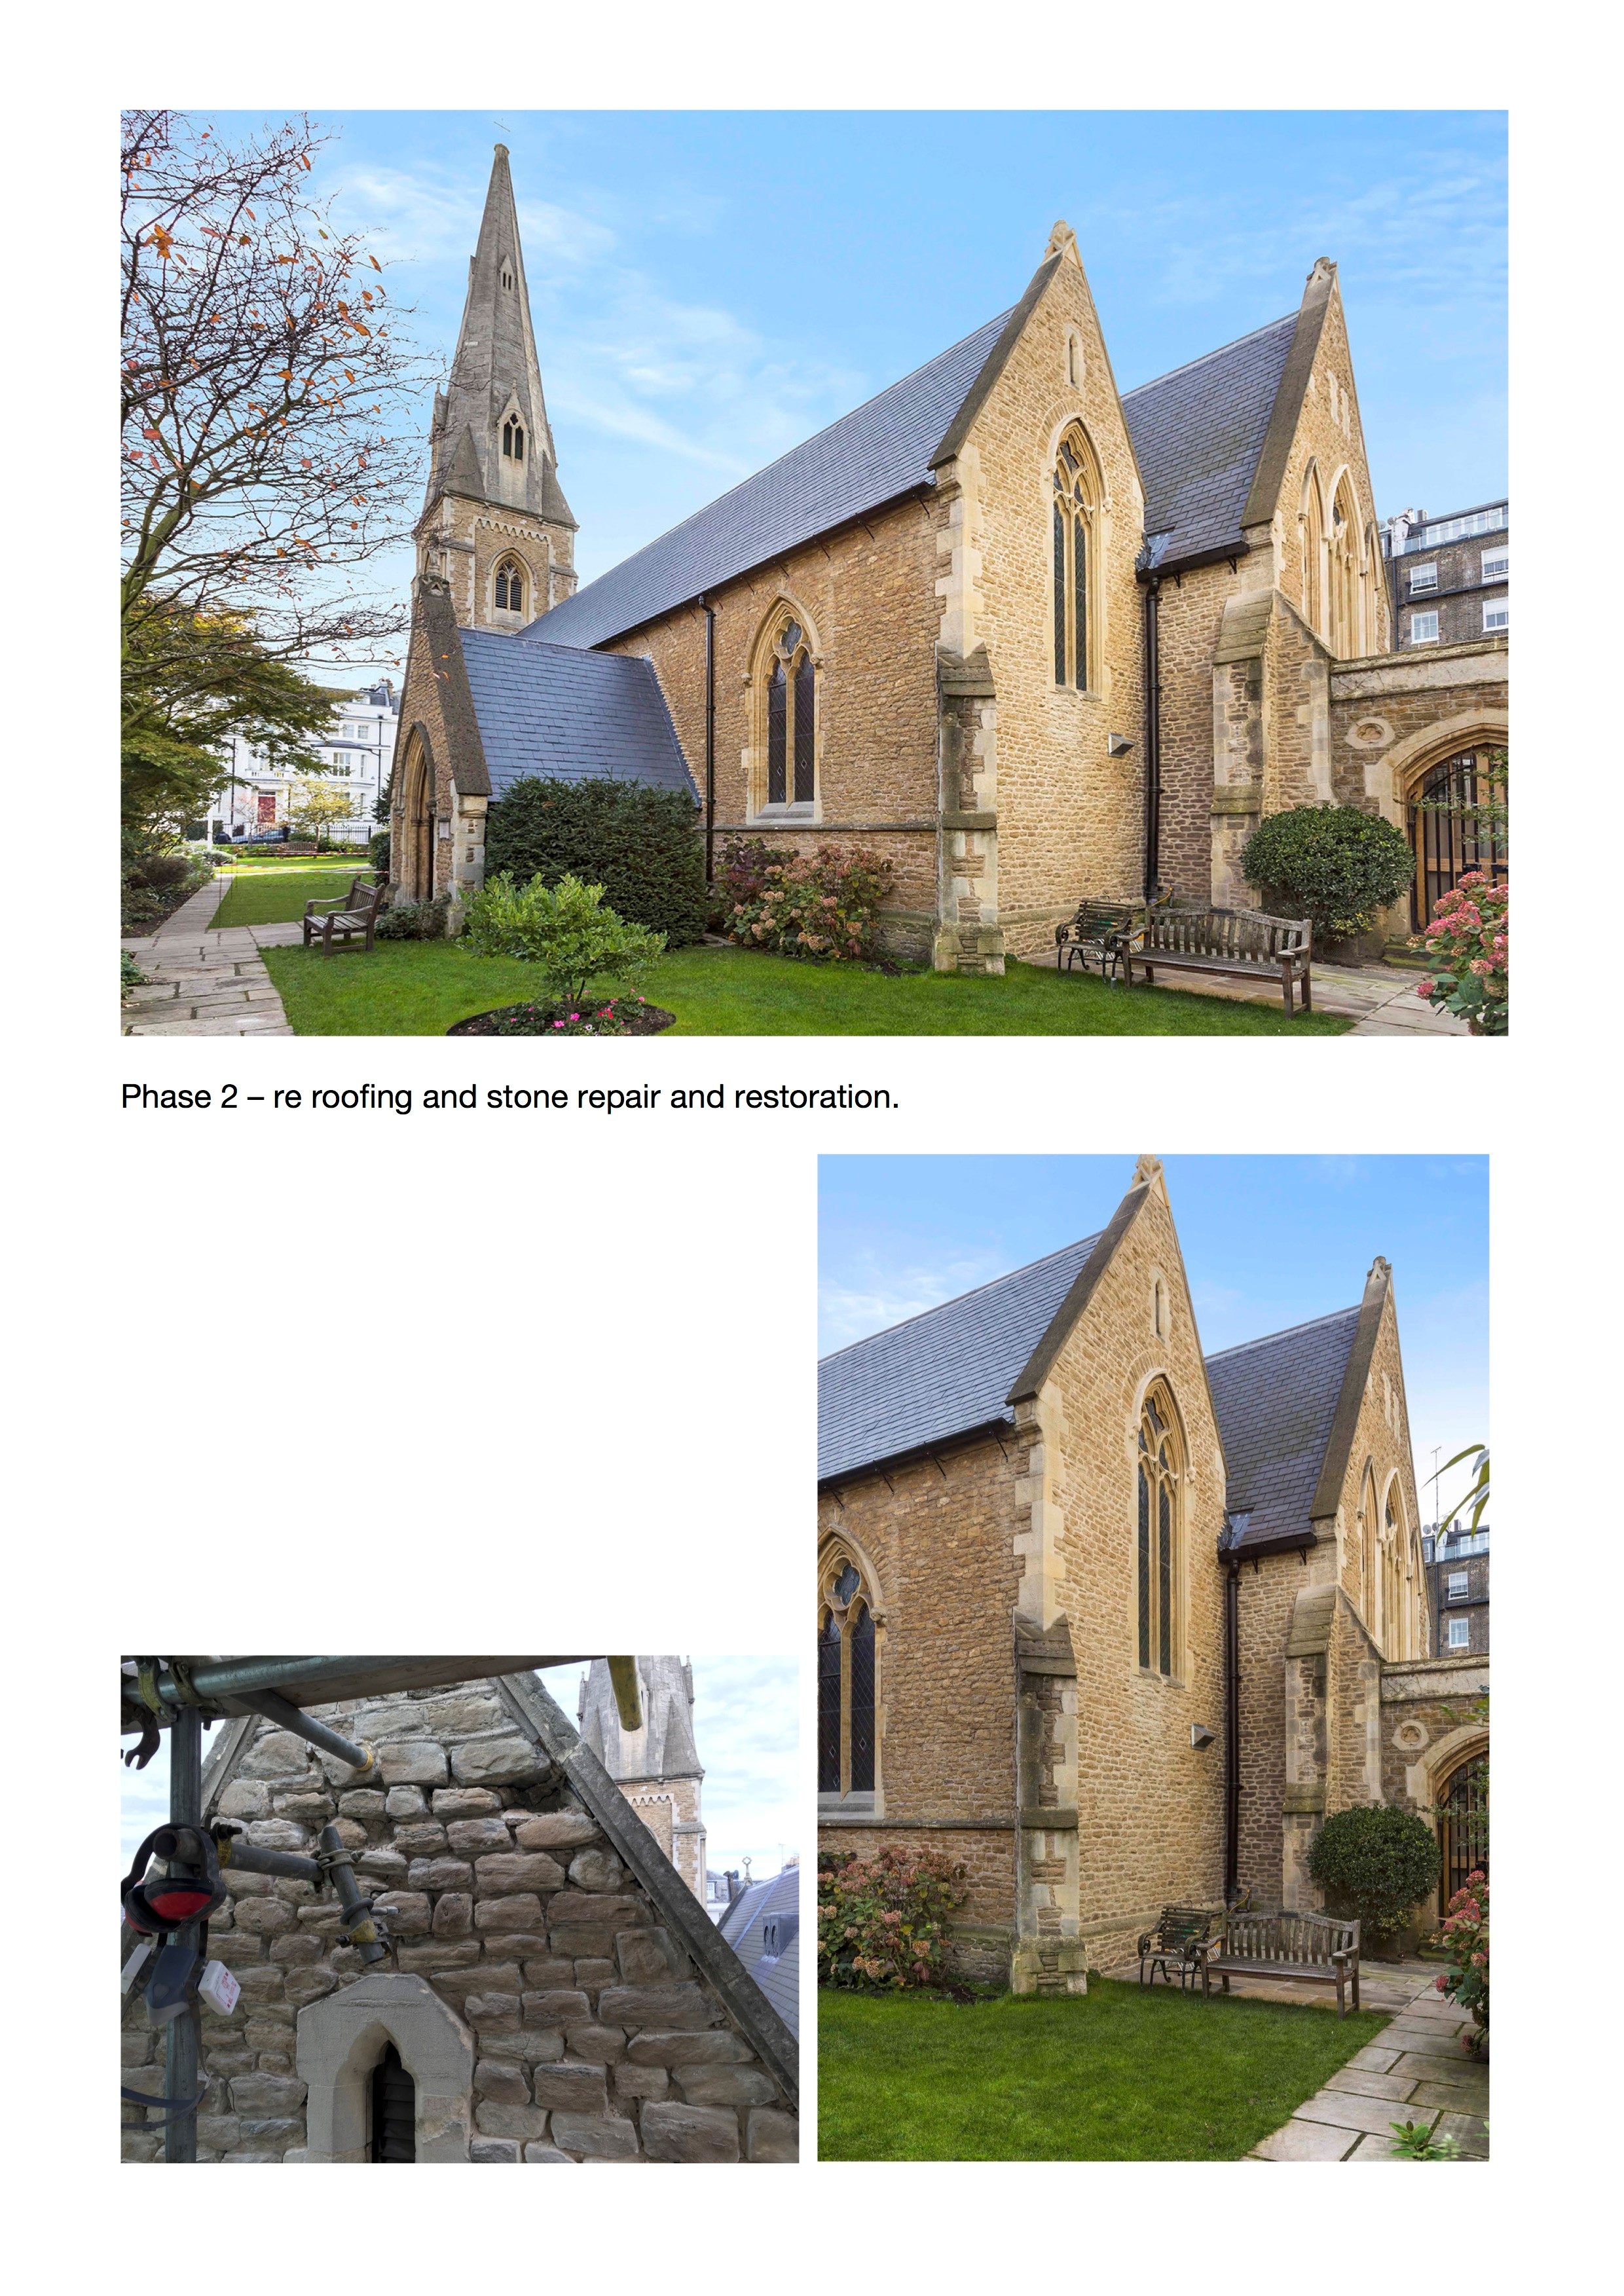 Presidents' Award 2019 Shortlist - Christ Church Kensington